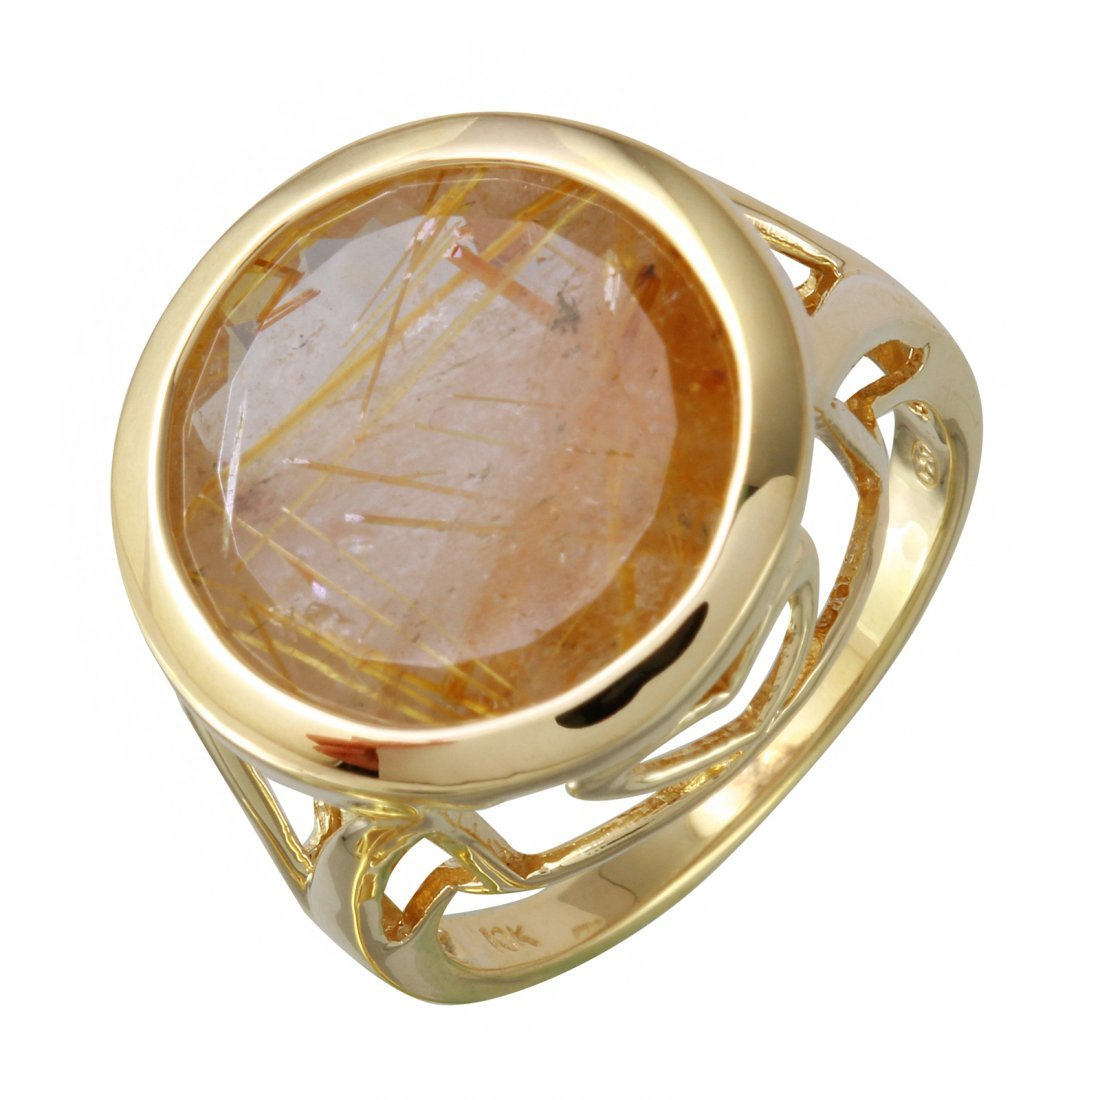 10K Yellow Gold Quartz Ring, 10 cts